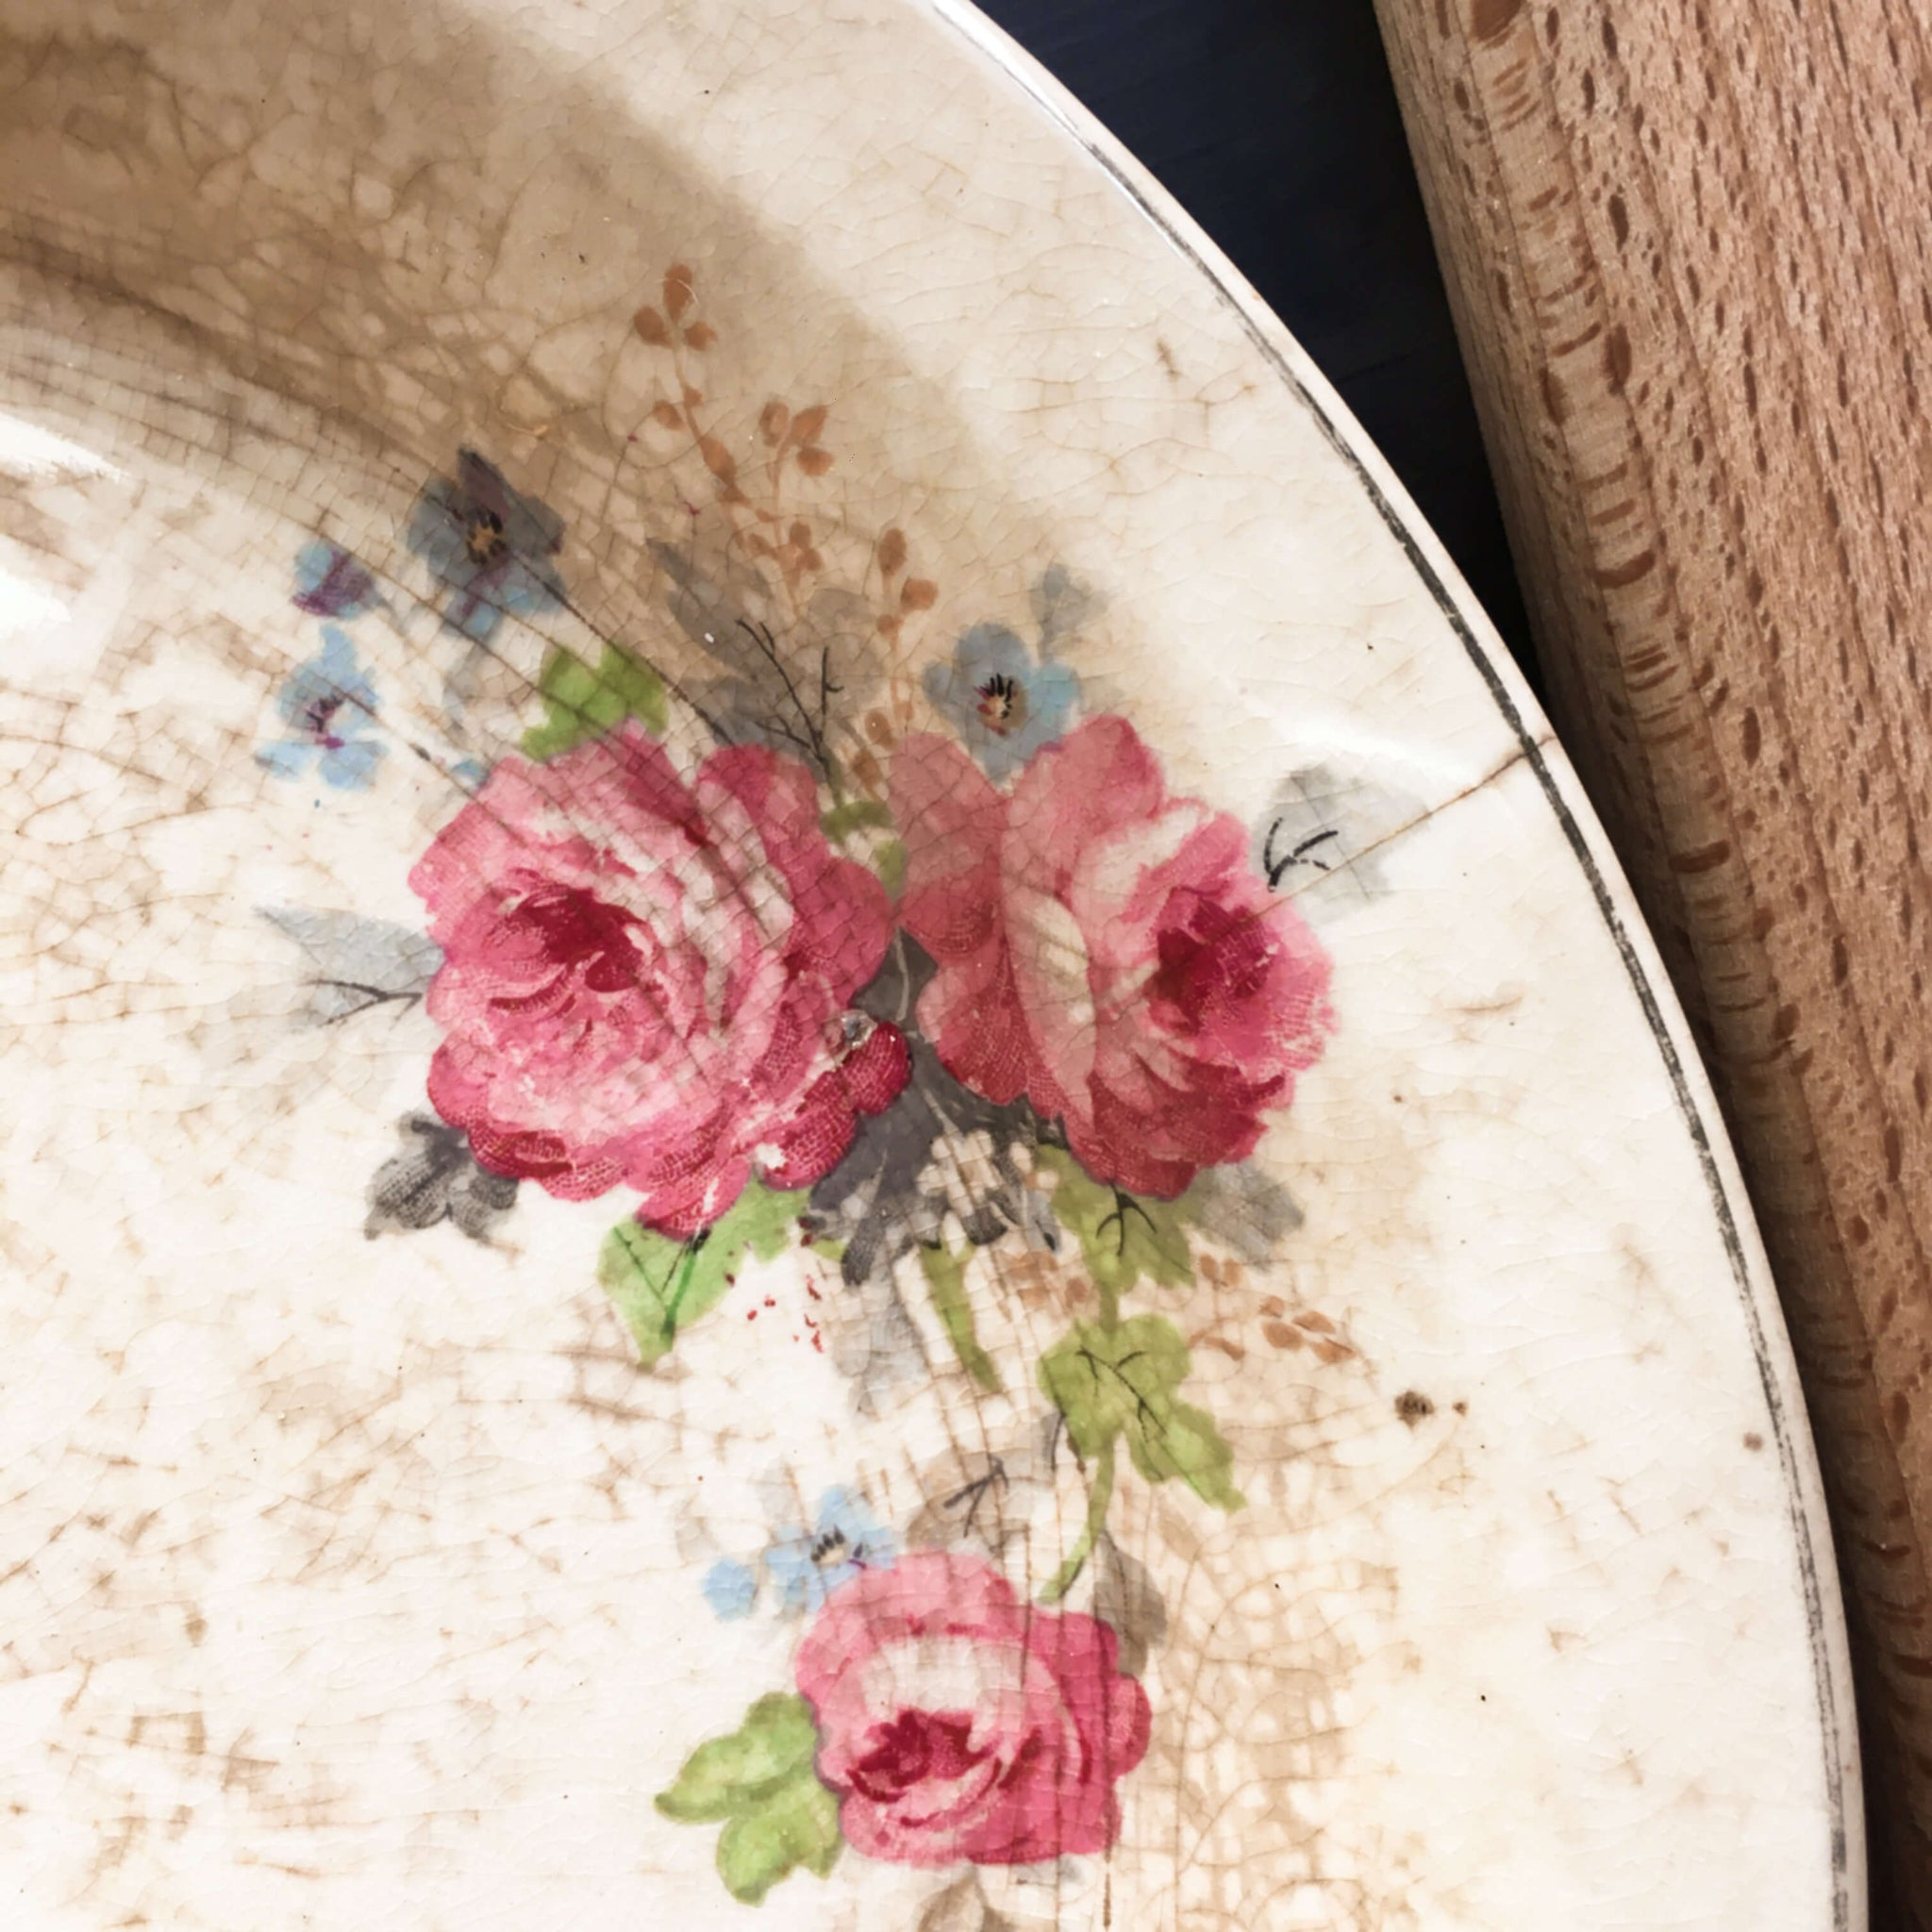 Vintage 1930s Ceramic Pie Dish - Pink Floral - Weathered, Aged and Well Loved